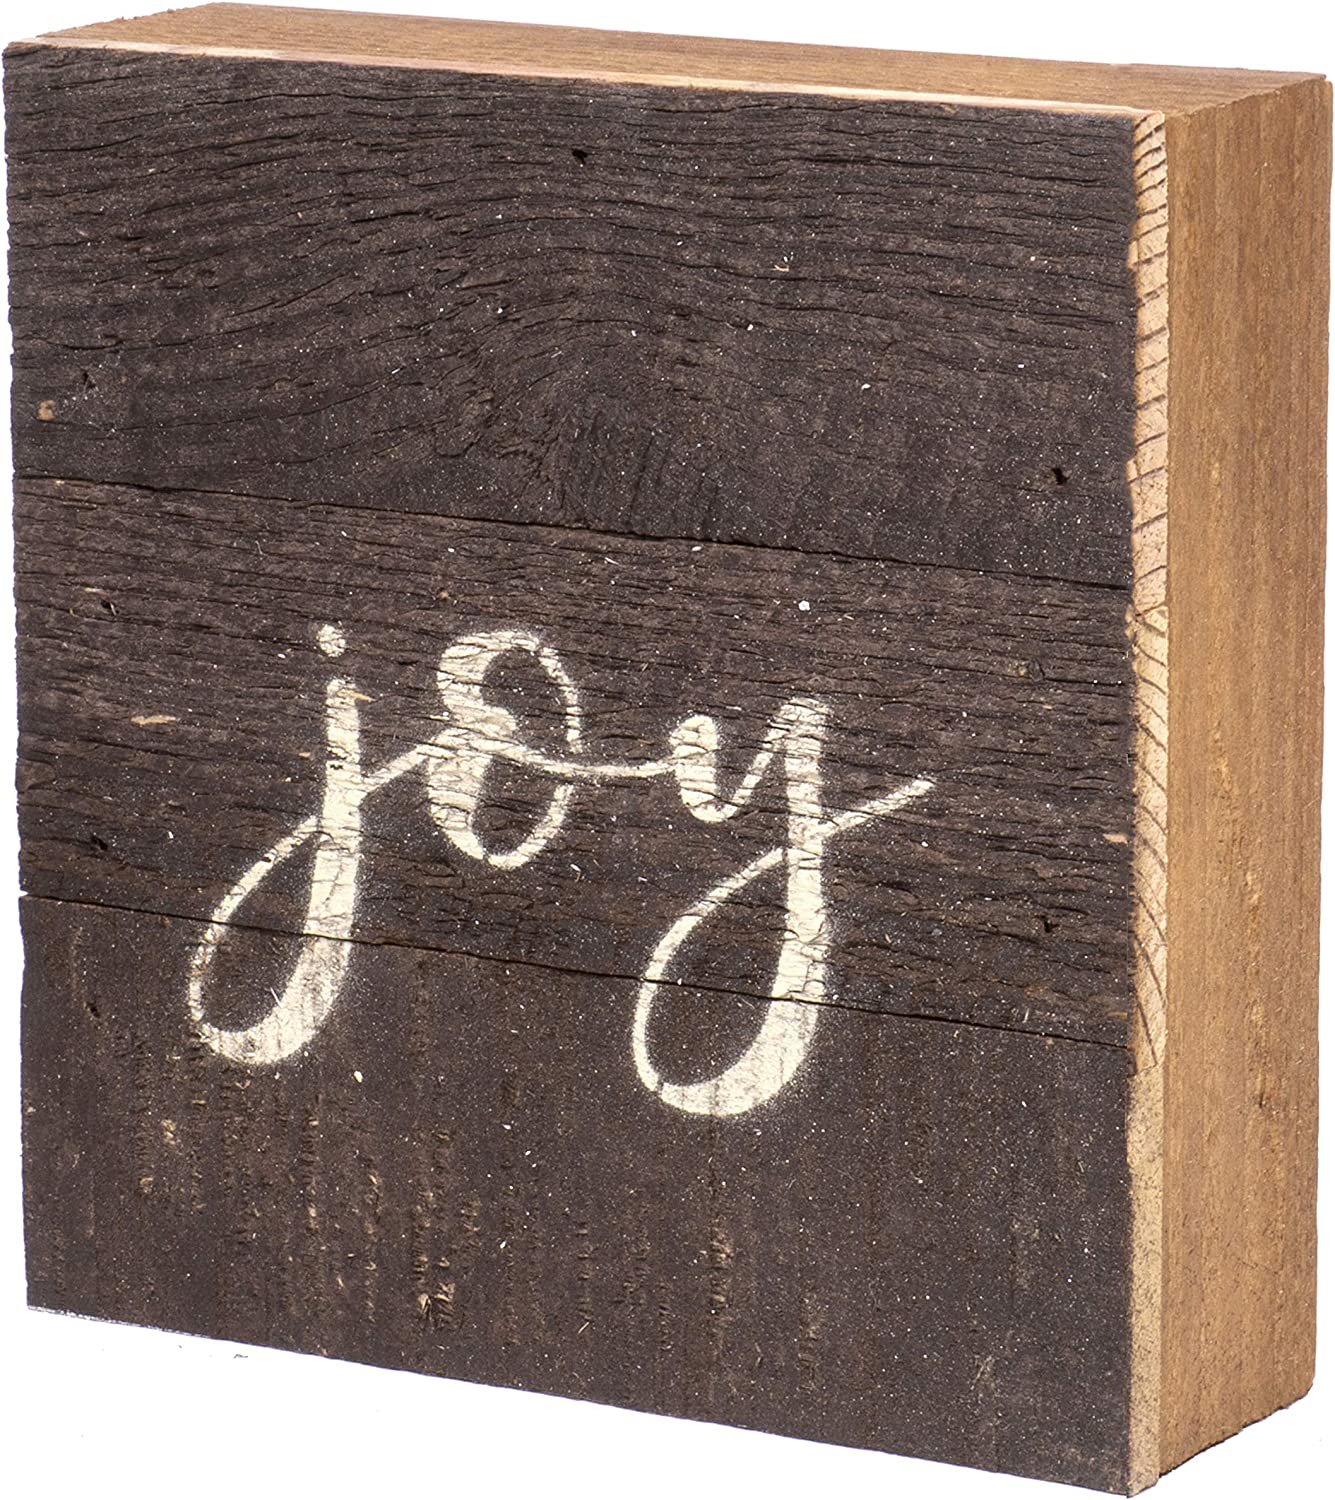 Second Nature By Hand 6x6 inch Reclaimed Wood Art, Handcrafted Decorative Wall Plaque — Joy